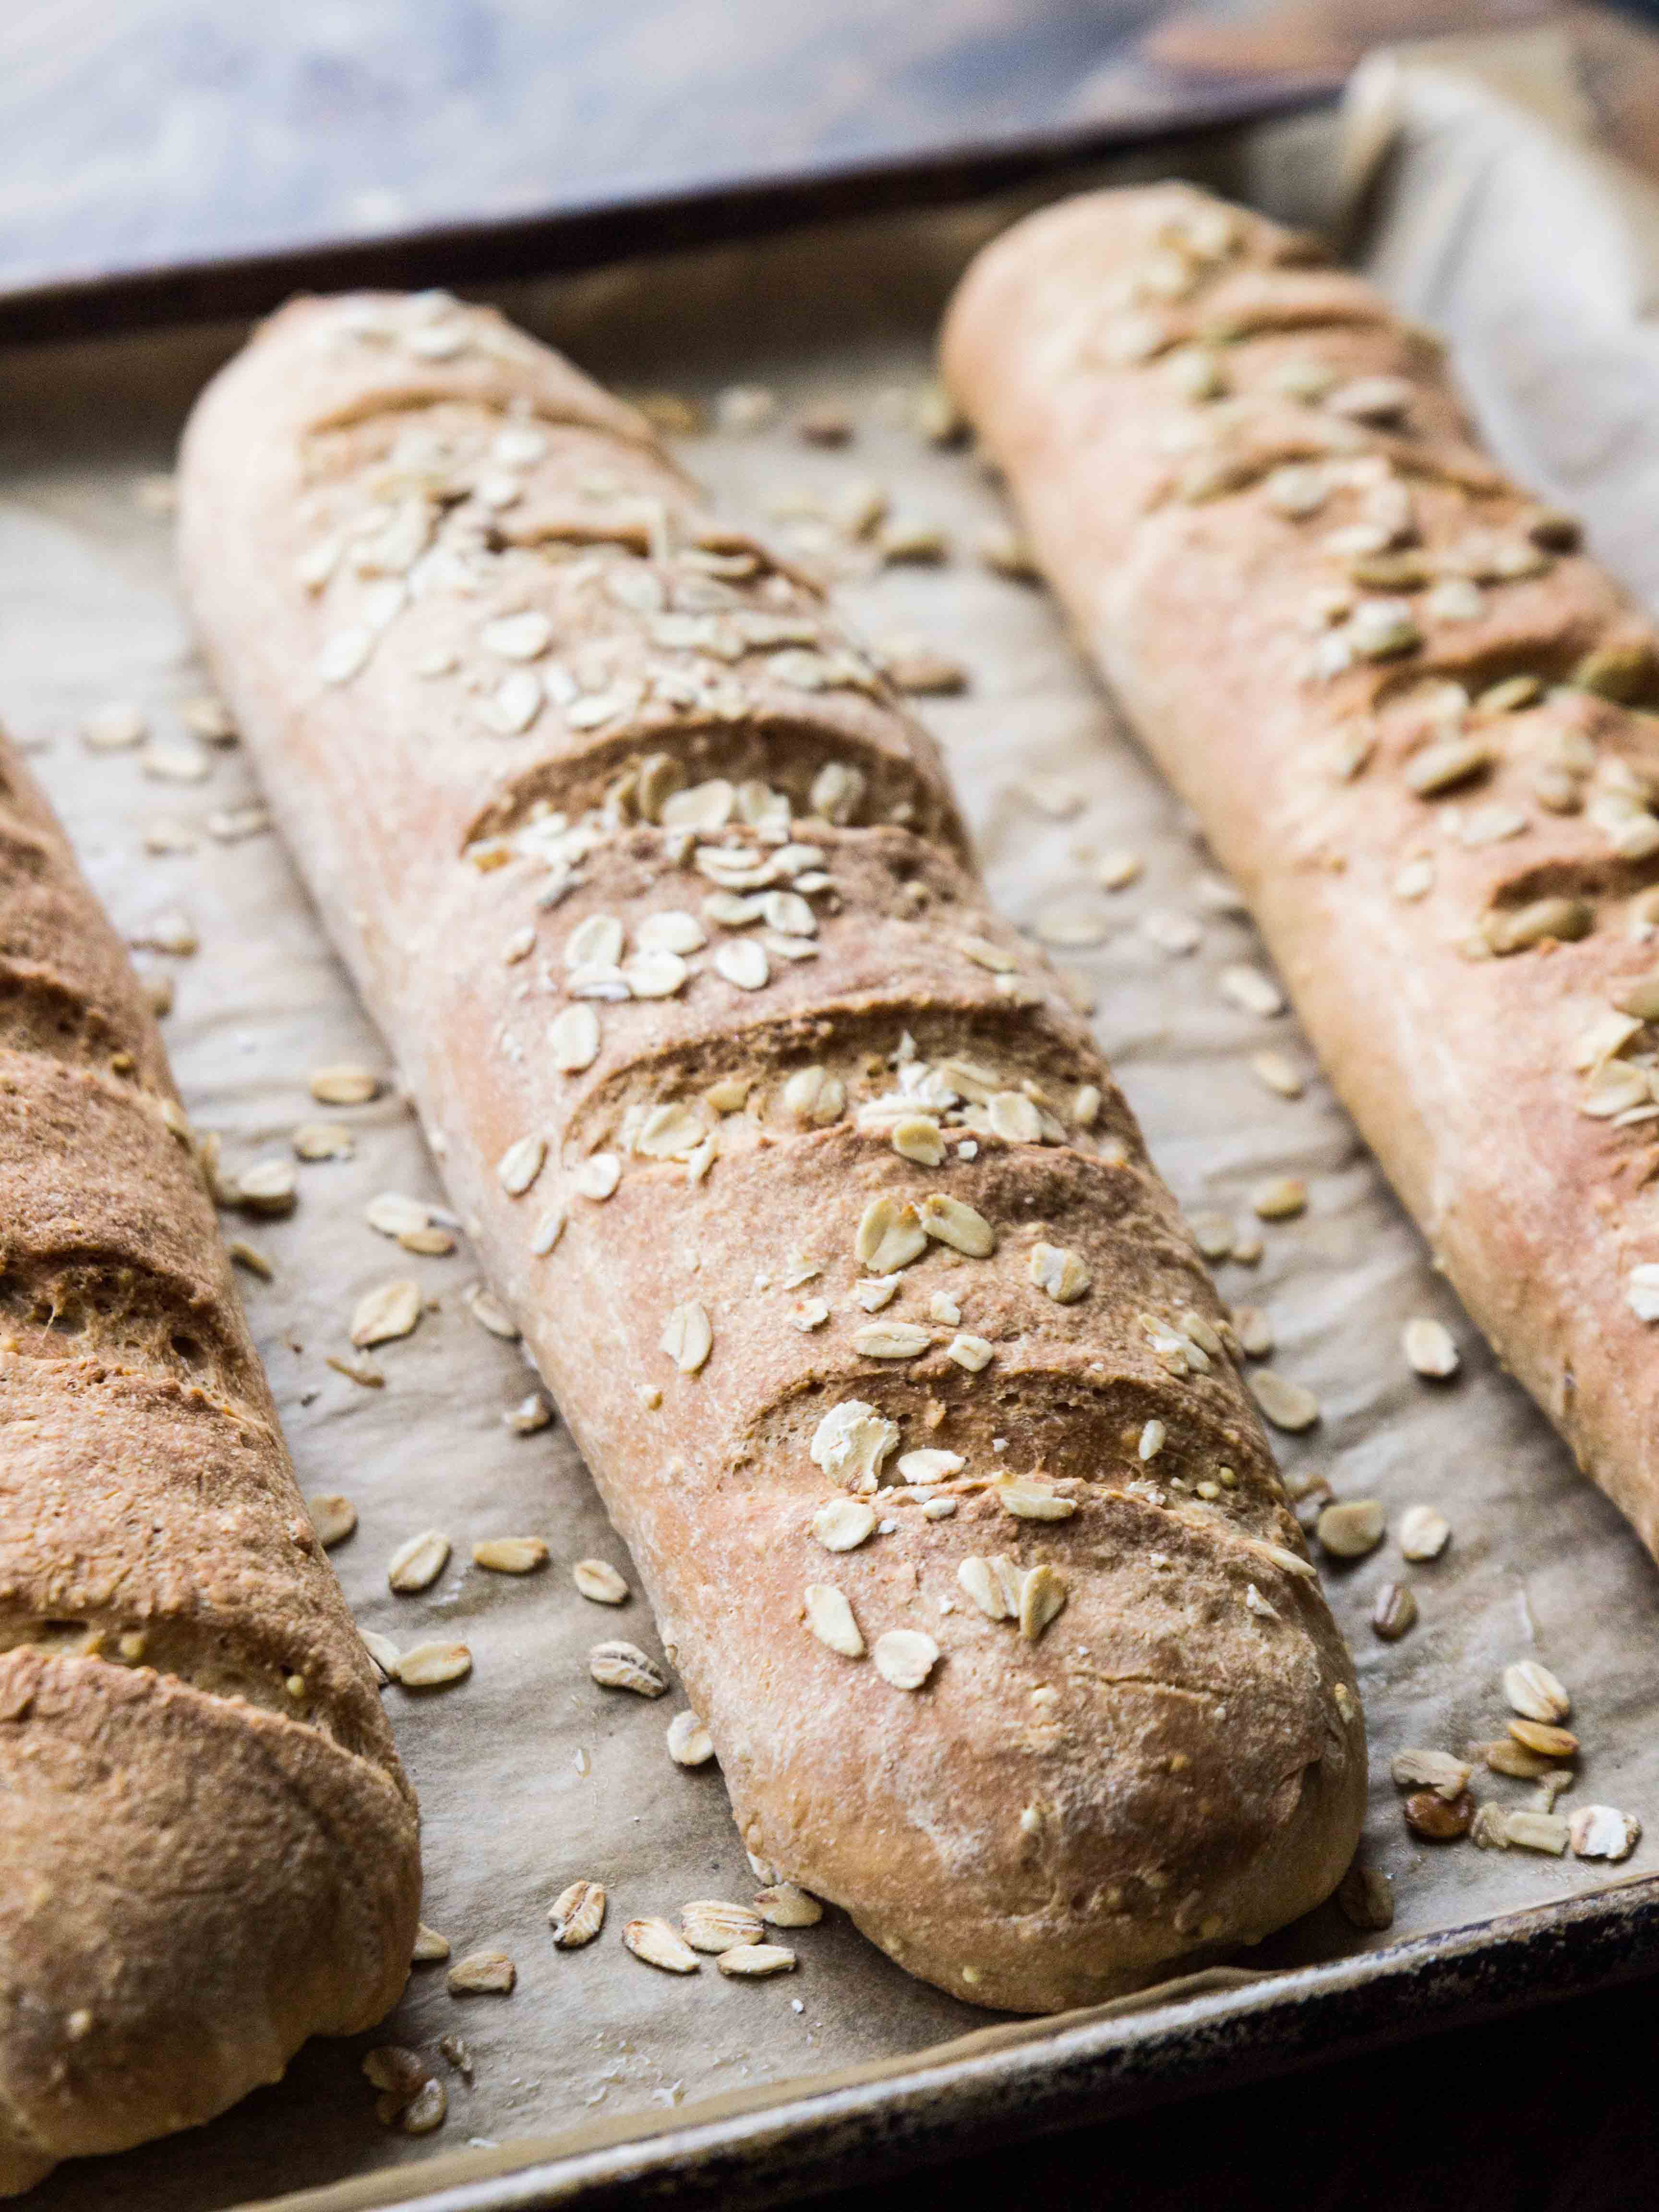 Whole Grain Flax and Millet Baguettes